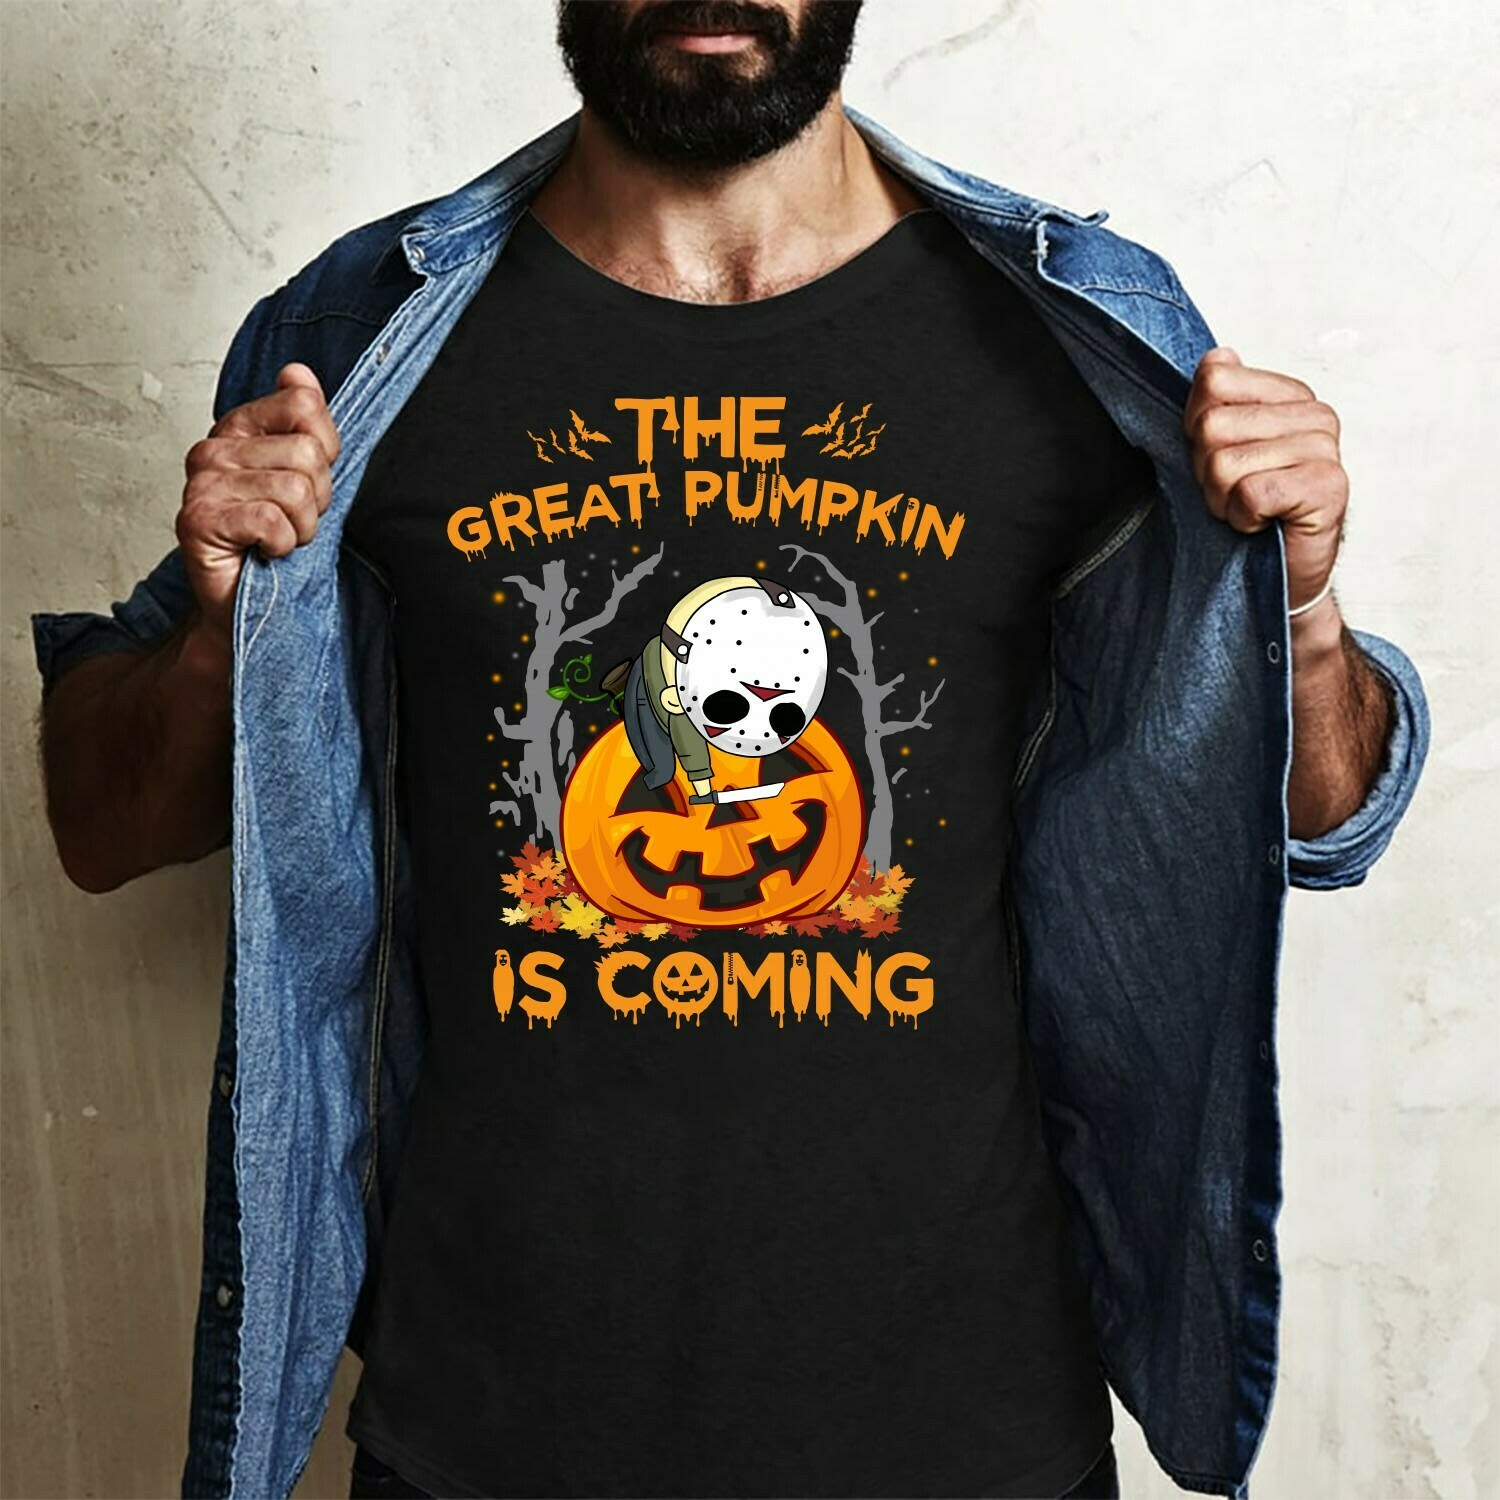 The Great Pumpkin Is Coming Chibi Jason Voorhees Horror Friday The 13th Villains Halloween Movie Mashup Halloween Tee Not So Scary T-Shirt Long Sleeve Sweatshirt Hoodie Jolly Family Gifts